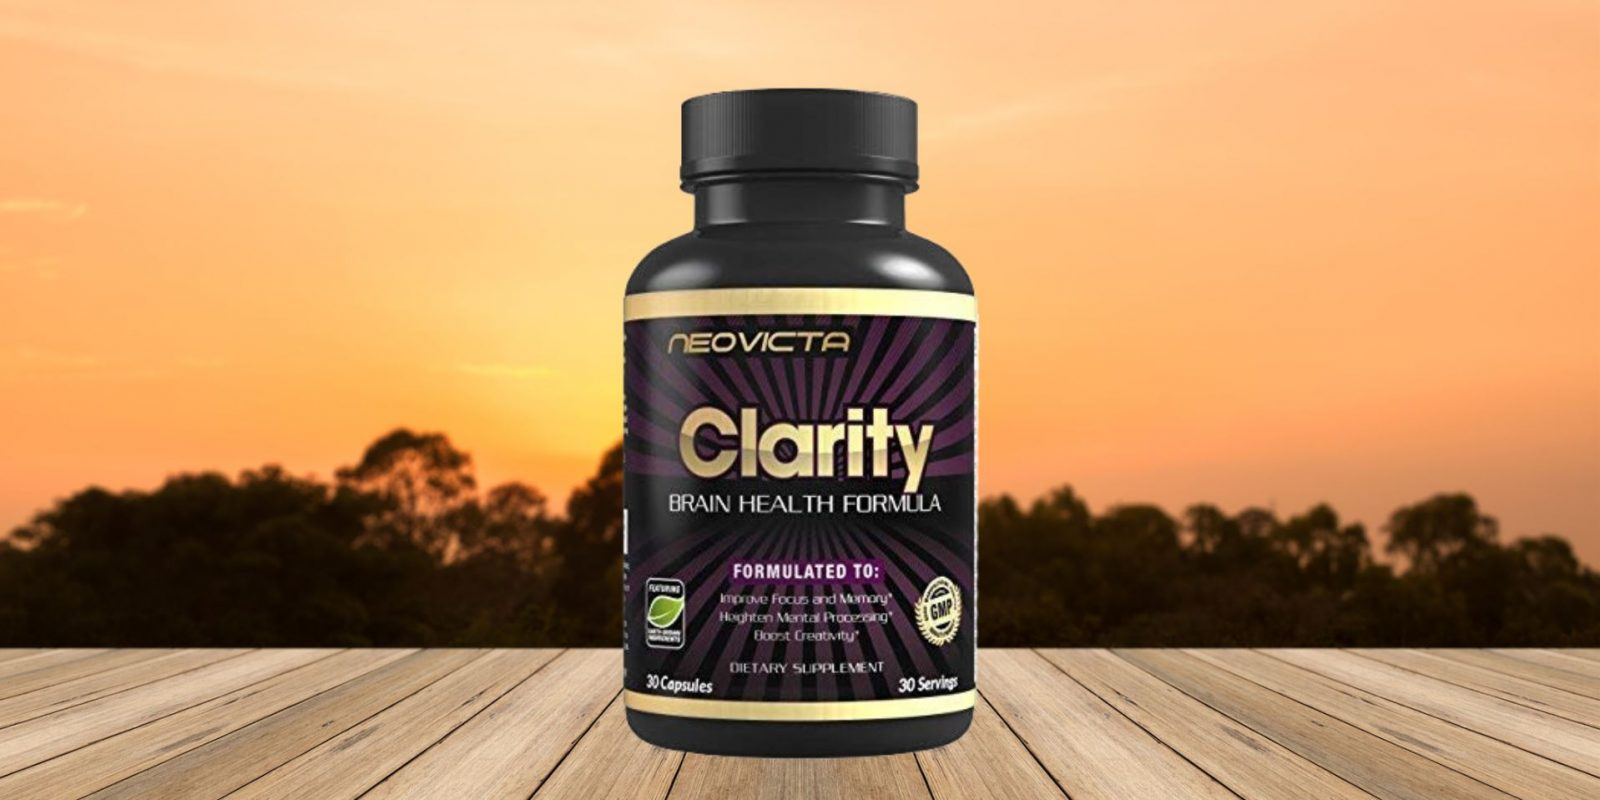 Clarity Brain Supplement Nootropic by Neovicta